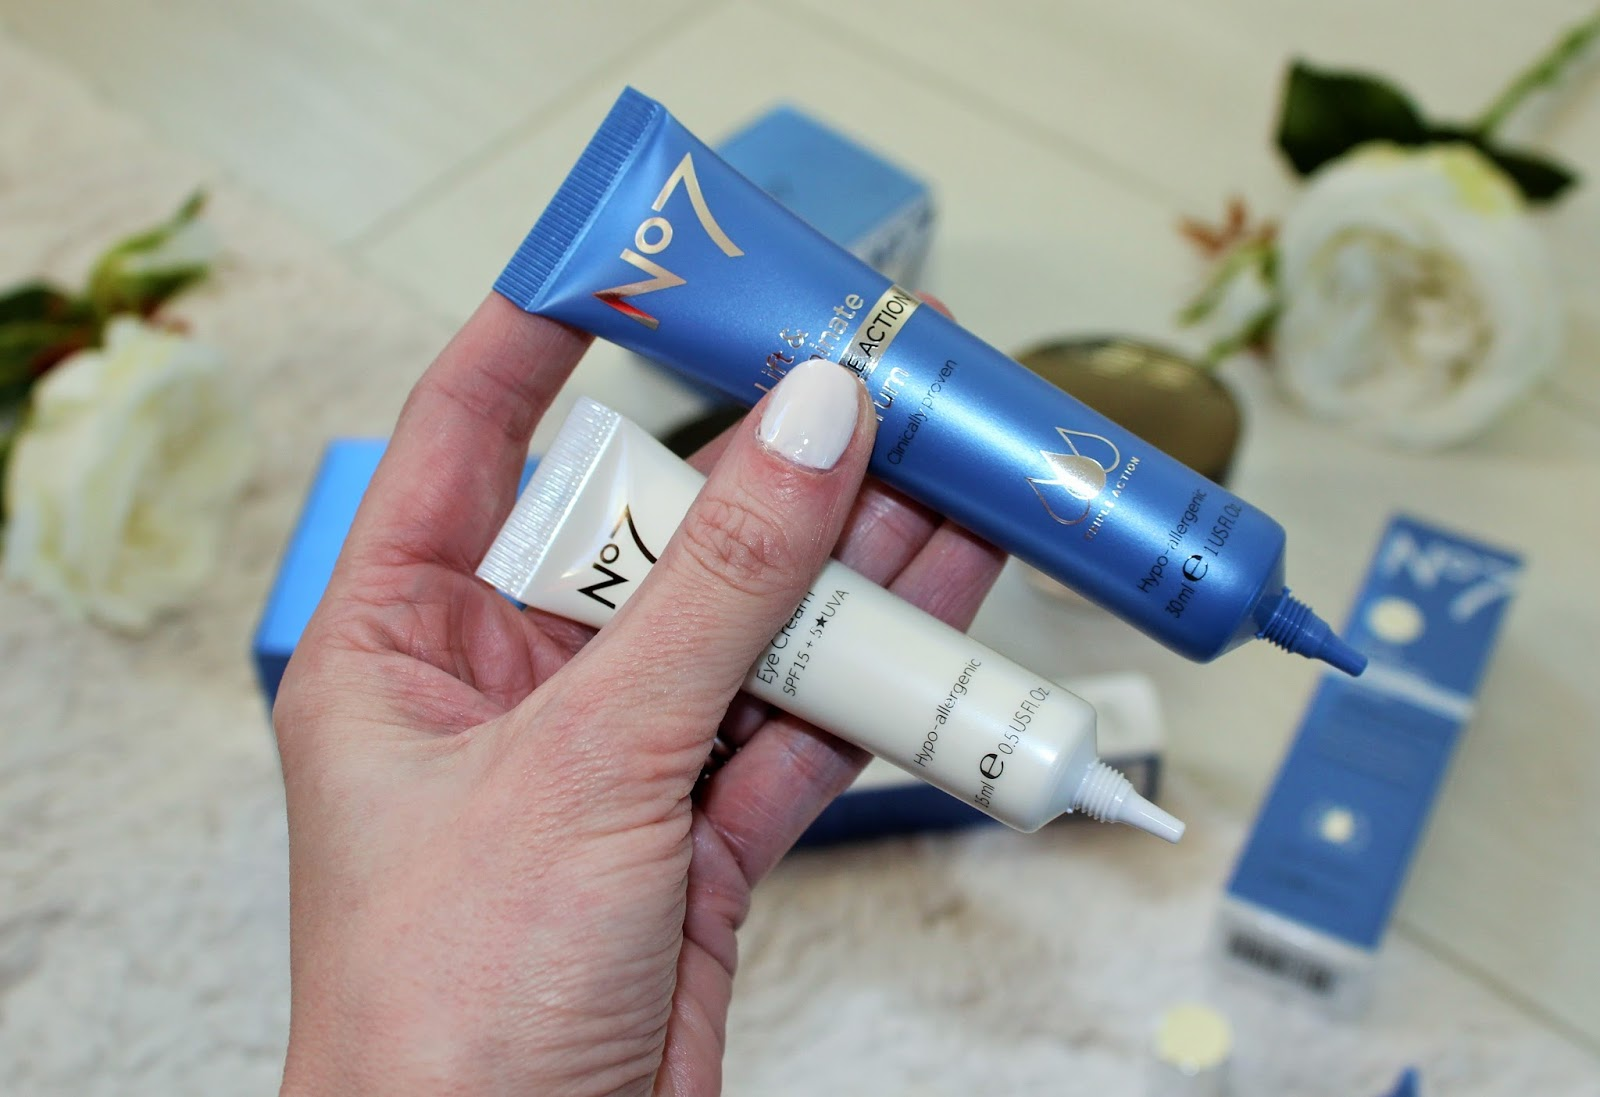 No7 Lift & Luminate Triple Action Range - First Impressions and Giveaway 7